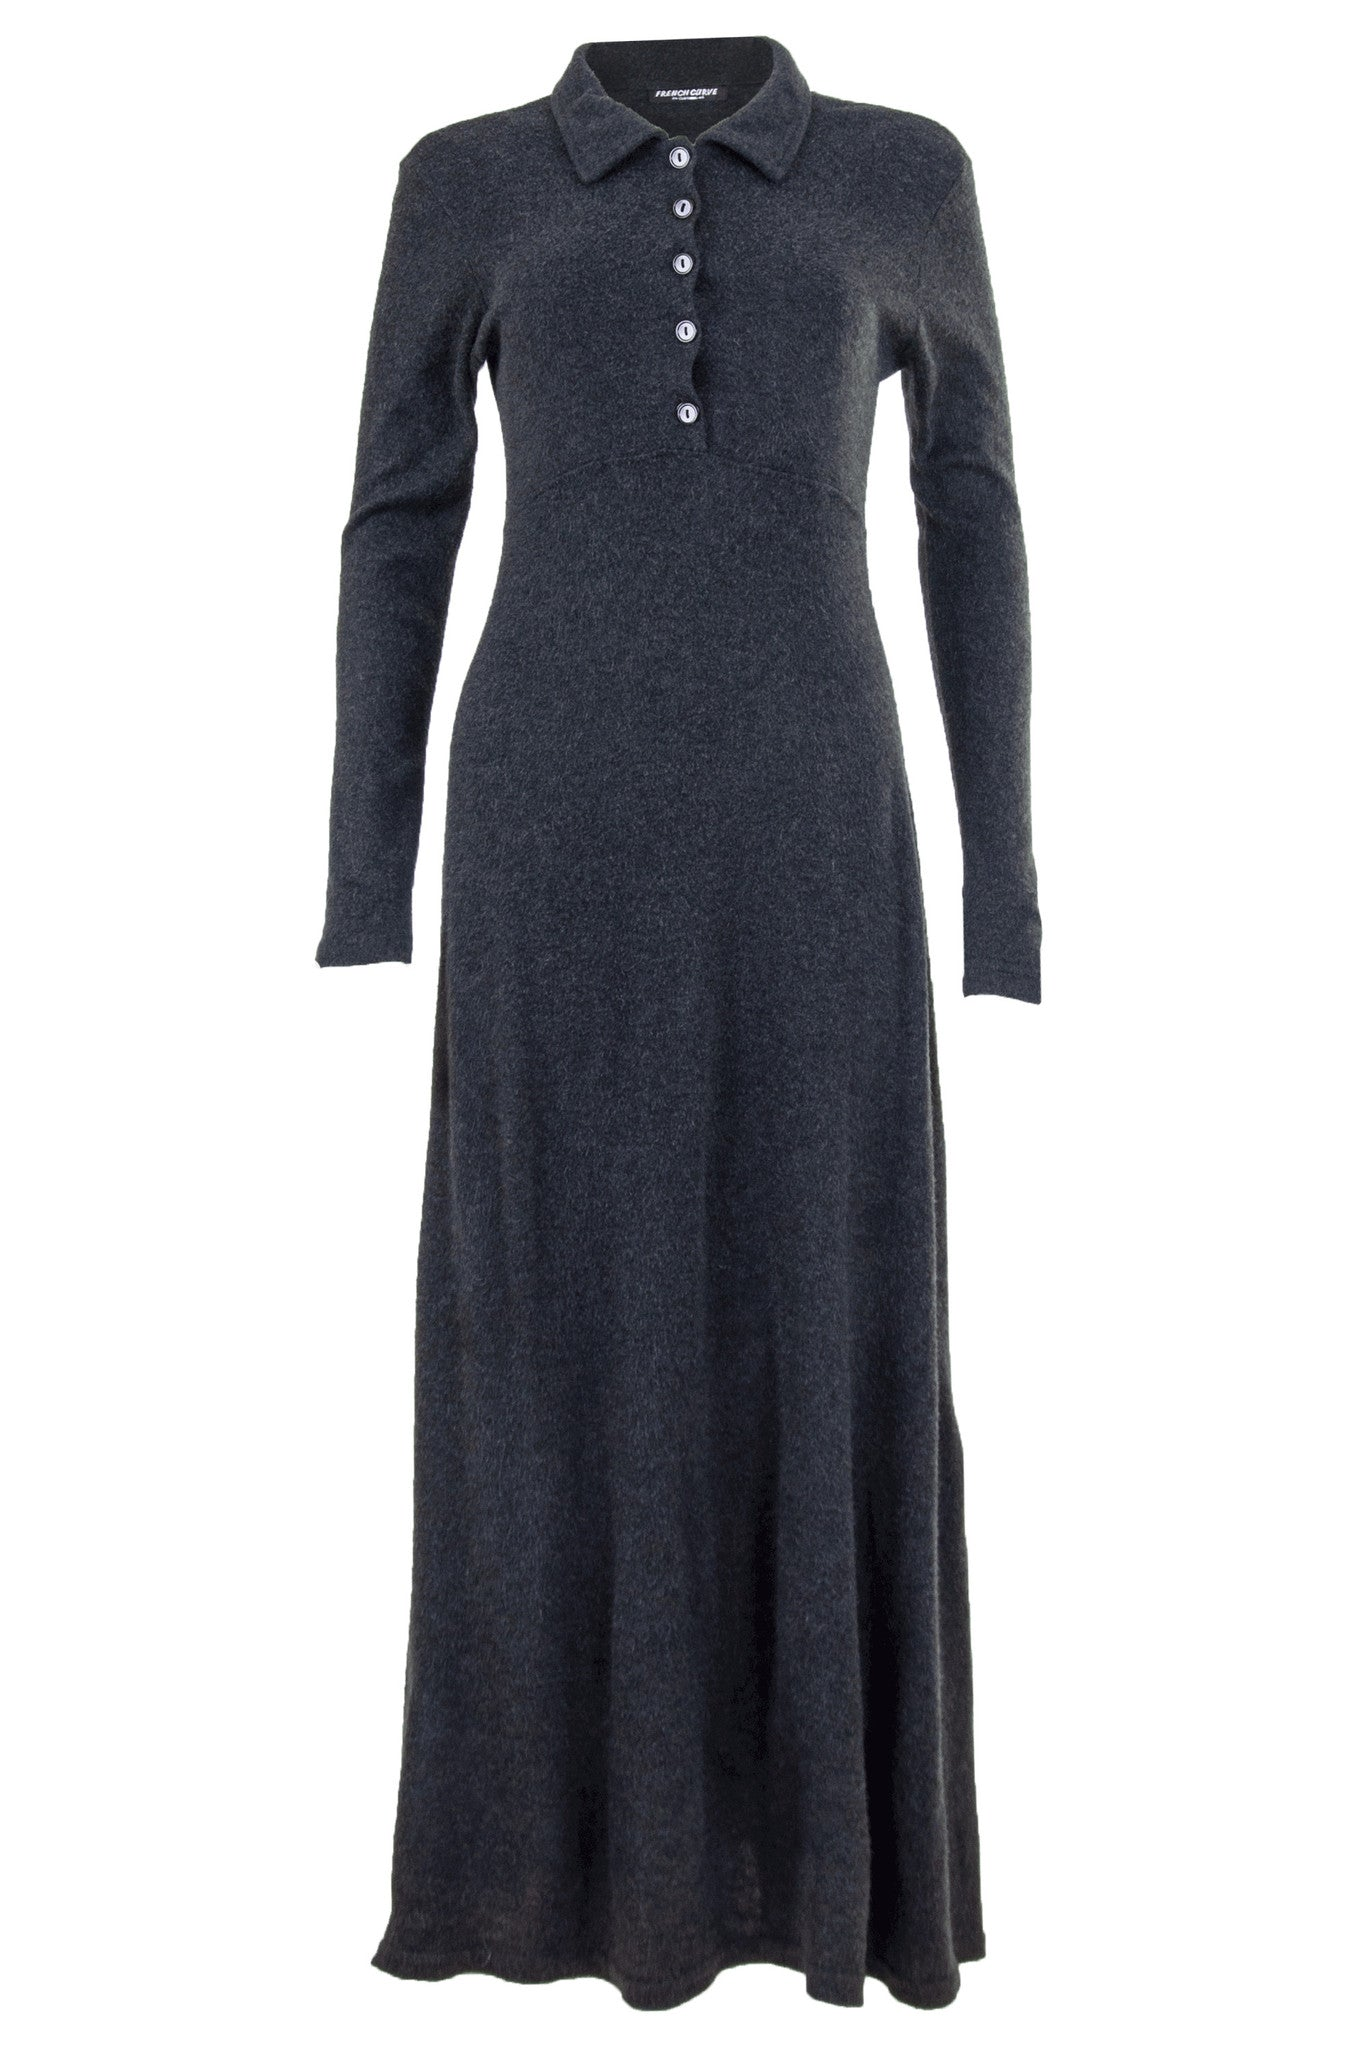 knit maxi dress with long sleeves and button front closure